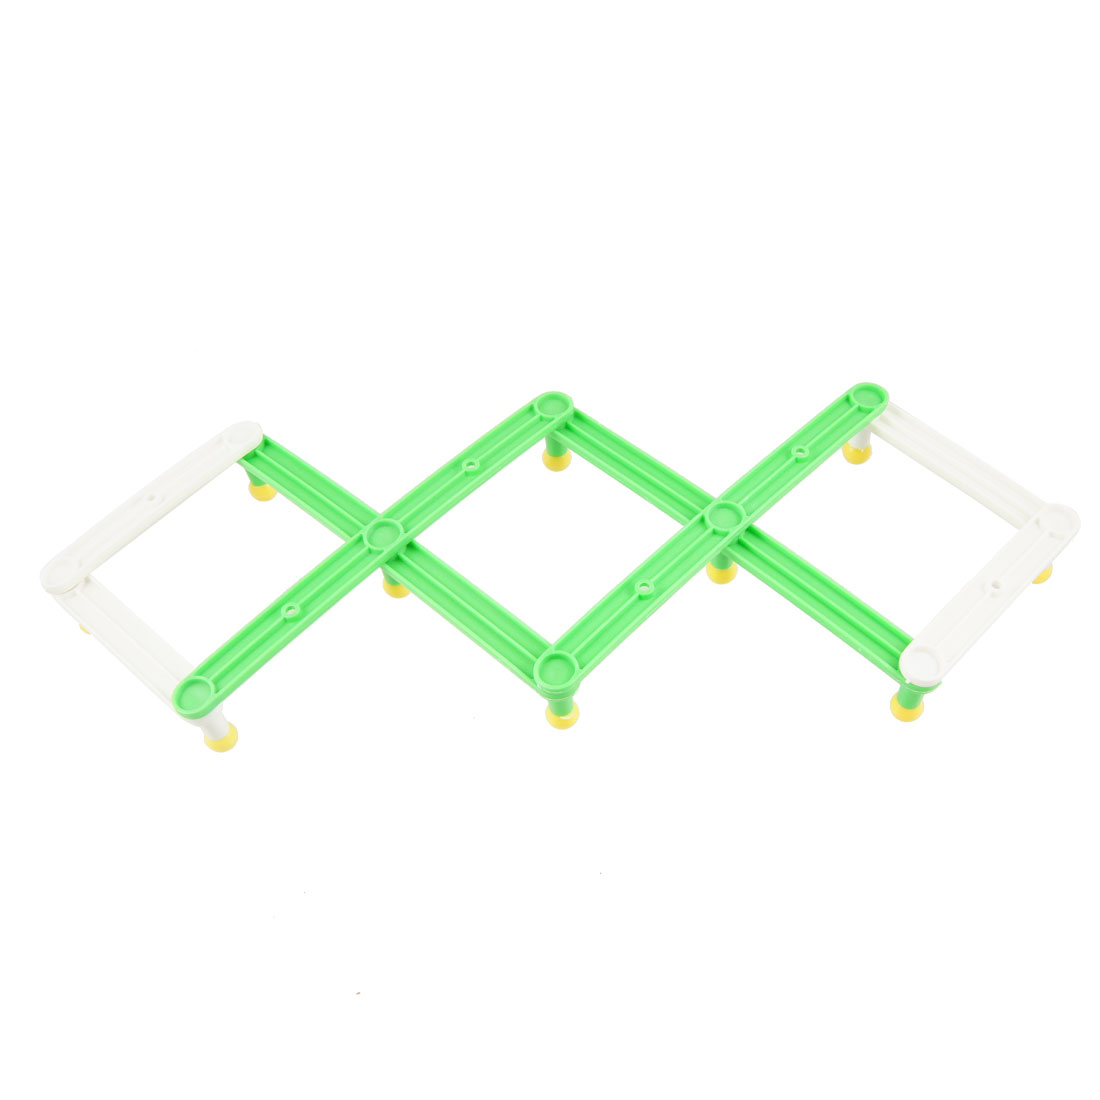 Home Plastic White Green Flexible Ten Round Knobs Clothes Hats Hanger